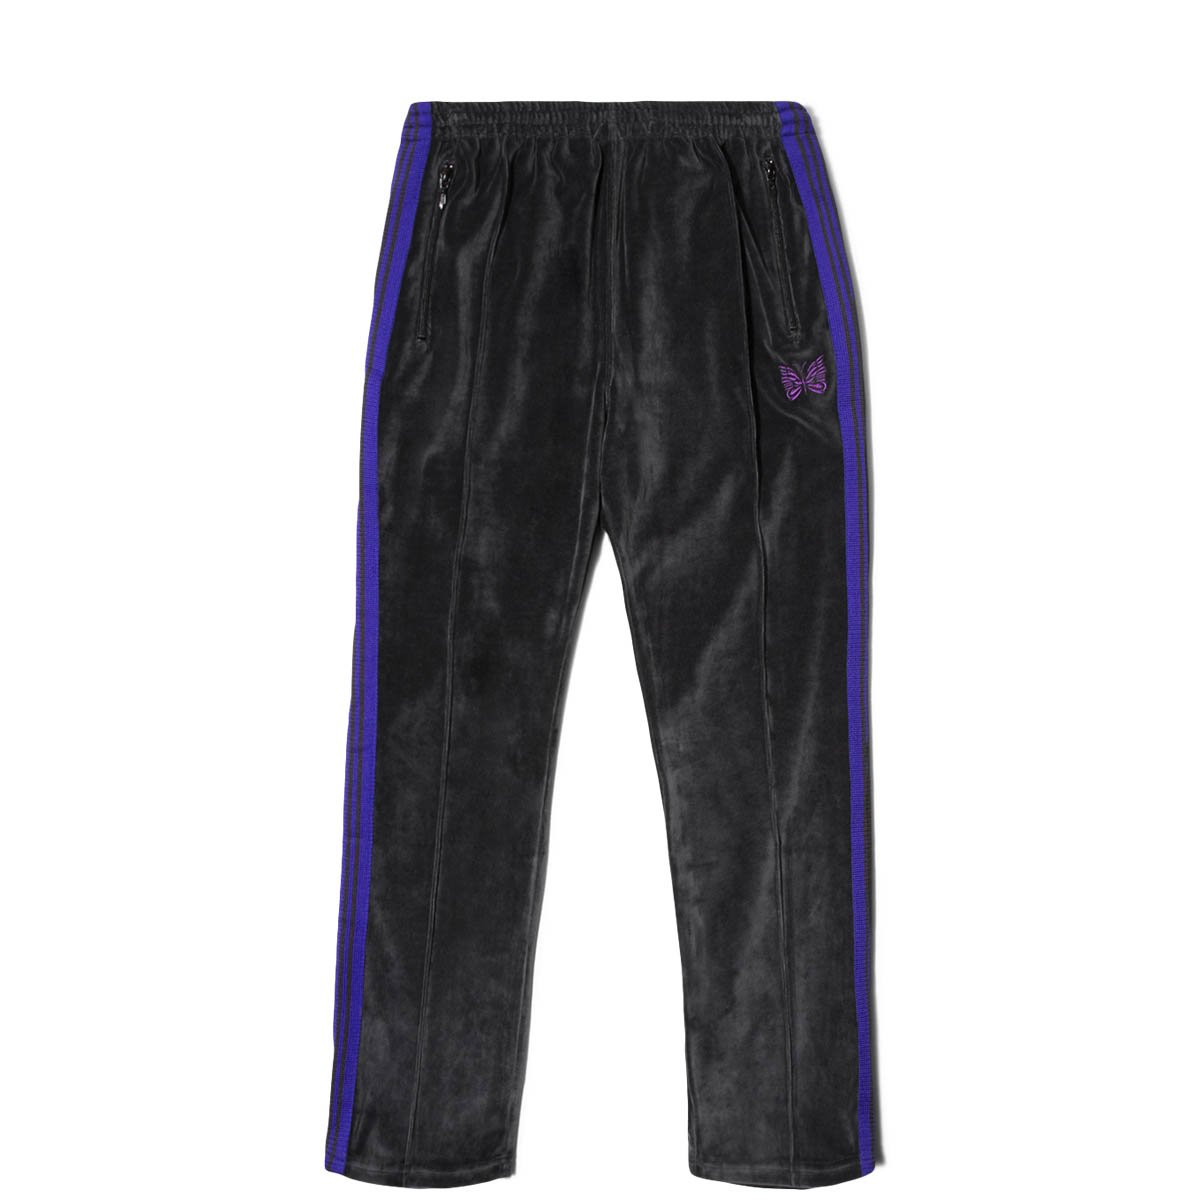 Needles Bottoms NARROW TRACK PANT